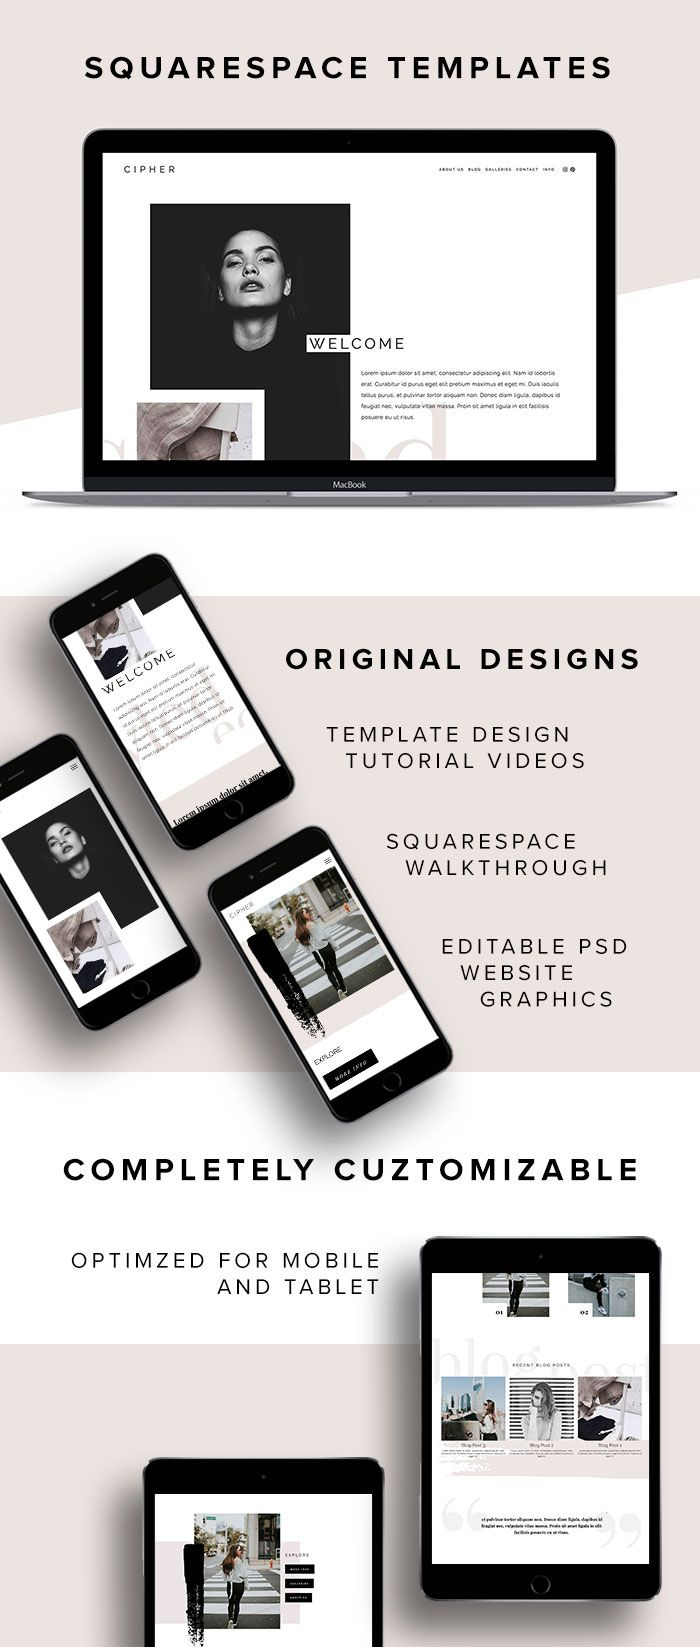 Cipher squarespace template by big cat creative squarespace cipher squarespace template by big cat creative squarespace templates website templates web design templates web design inspiration small business flashek Gallery